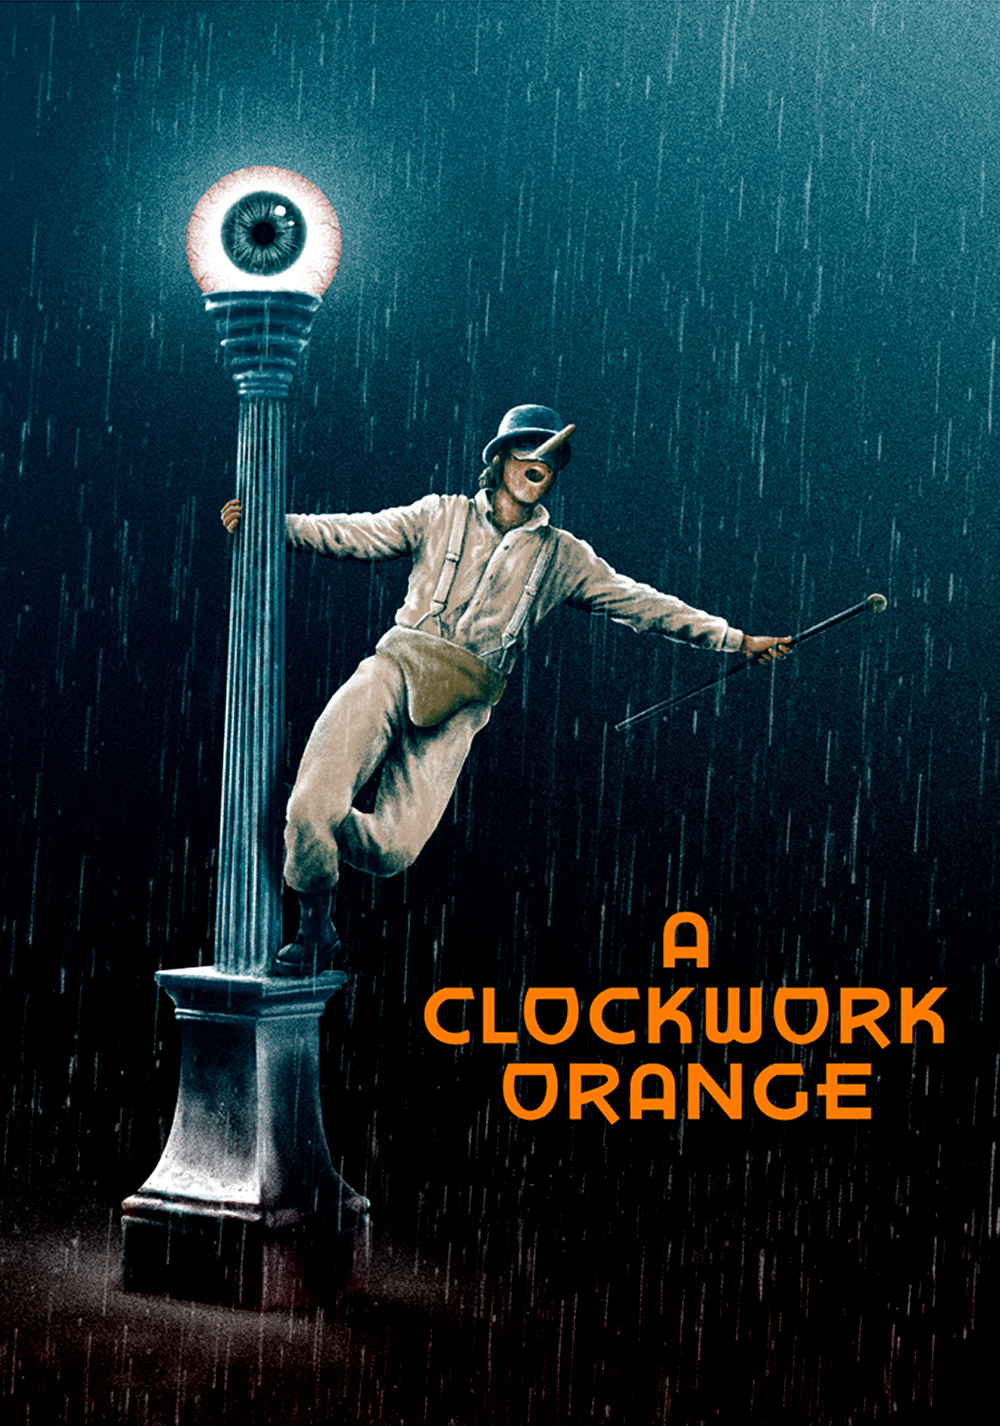 A Clockwork Orange Art - ID: 100501 - Art Abyss A Clockwork Orange Painting